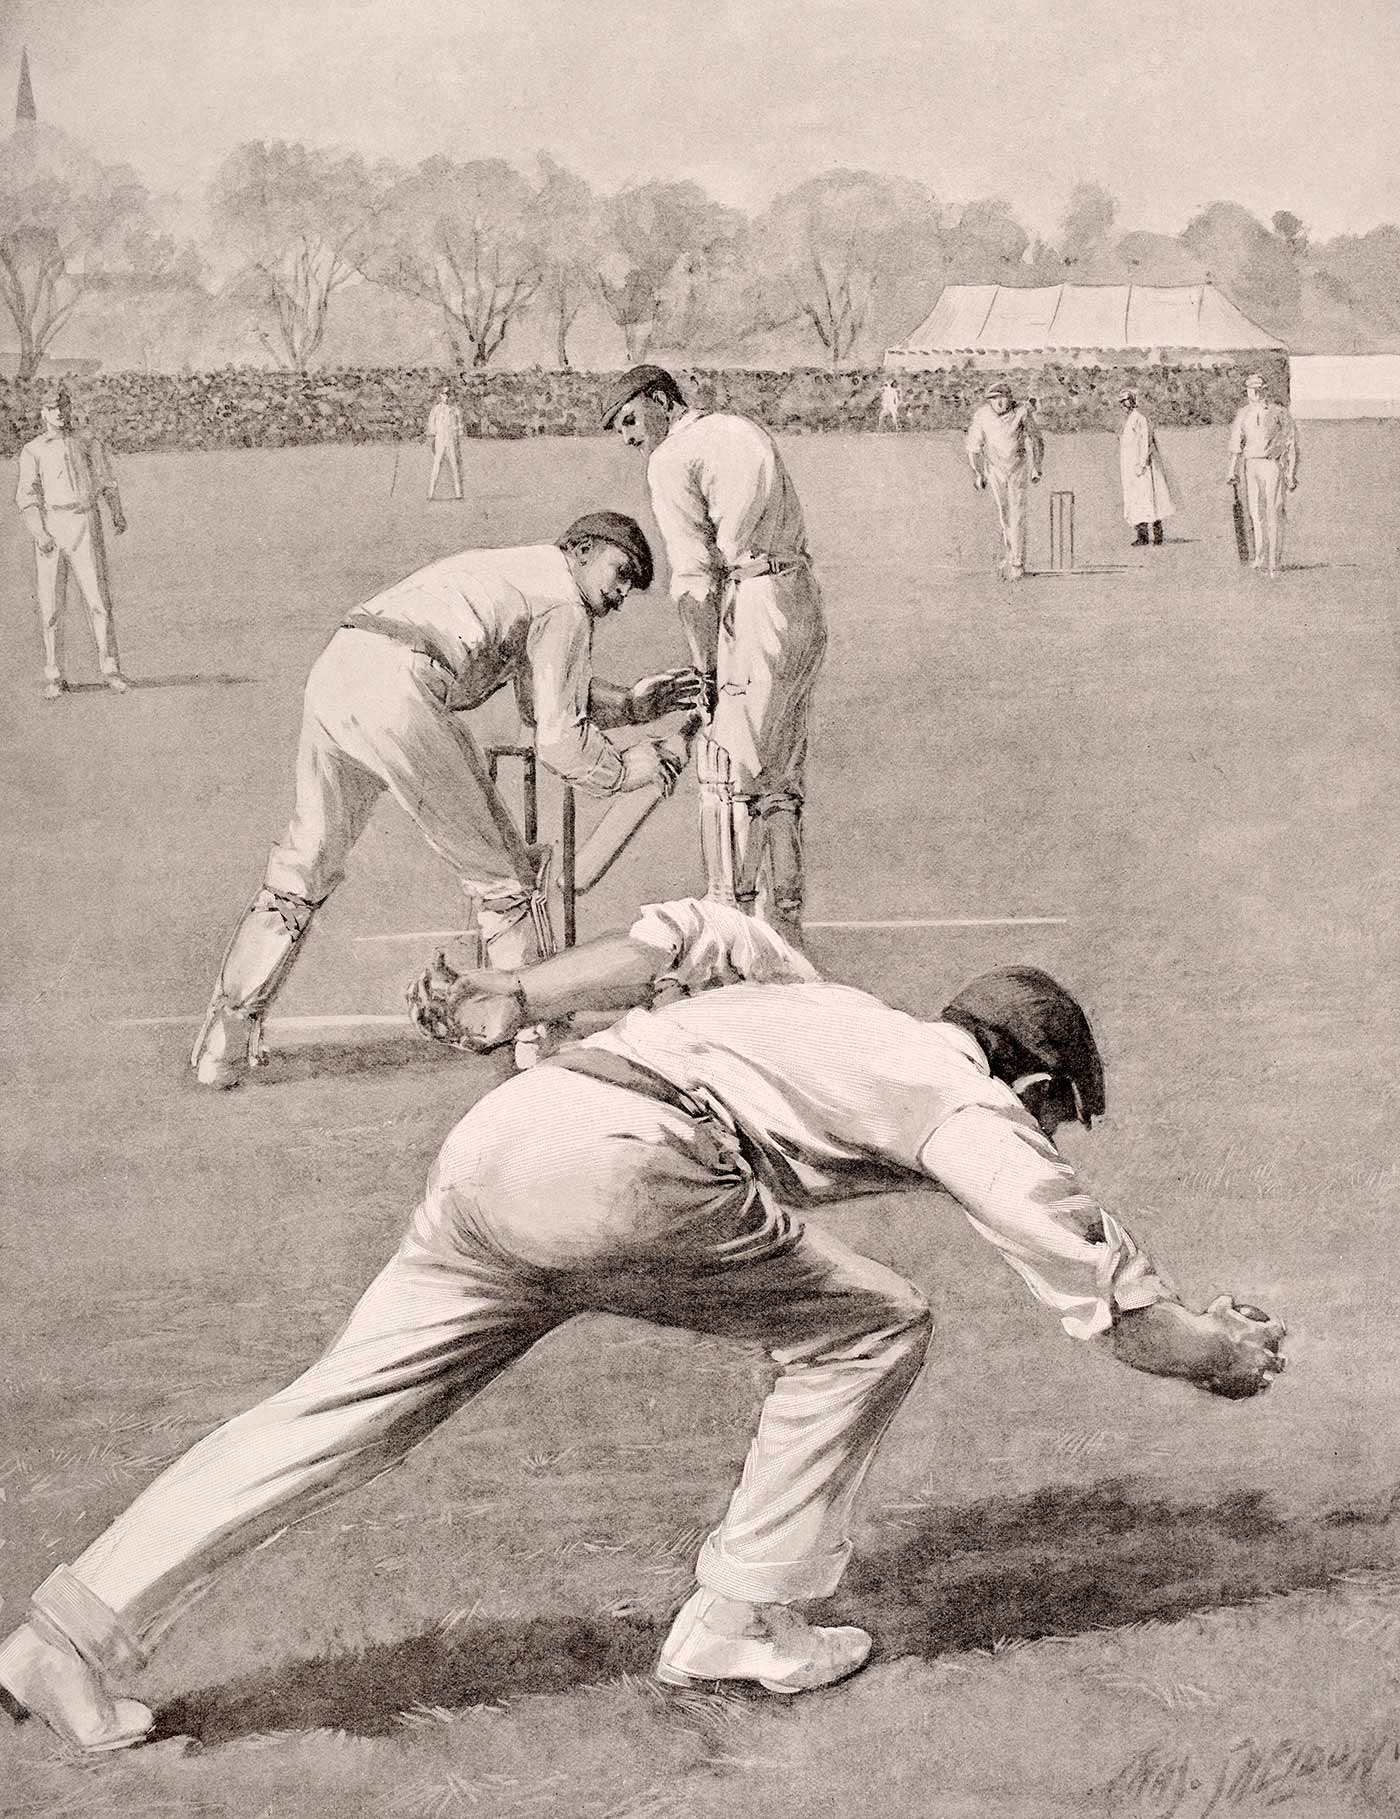 The classic painting of Len Braund catching Clem Hill that appeard in <i>Black & White</i> on July 7, 1902